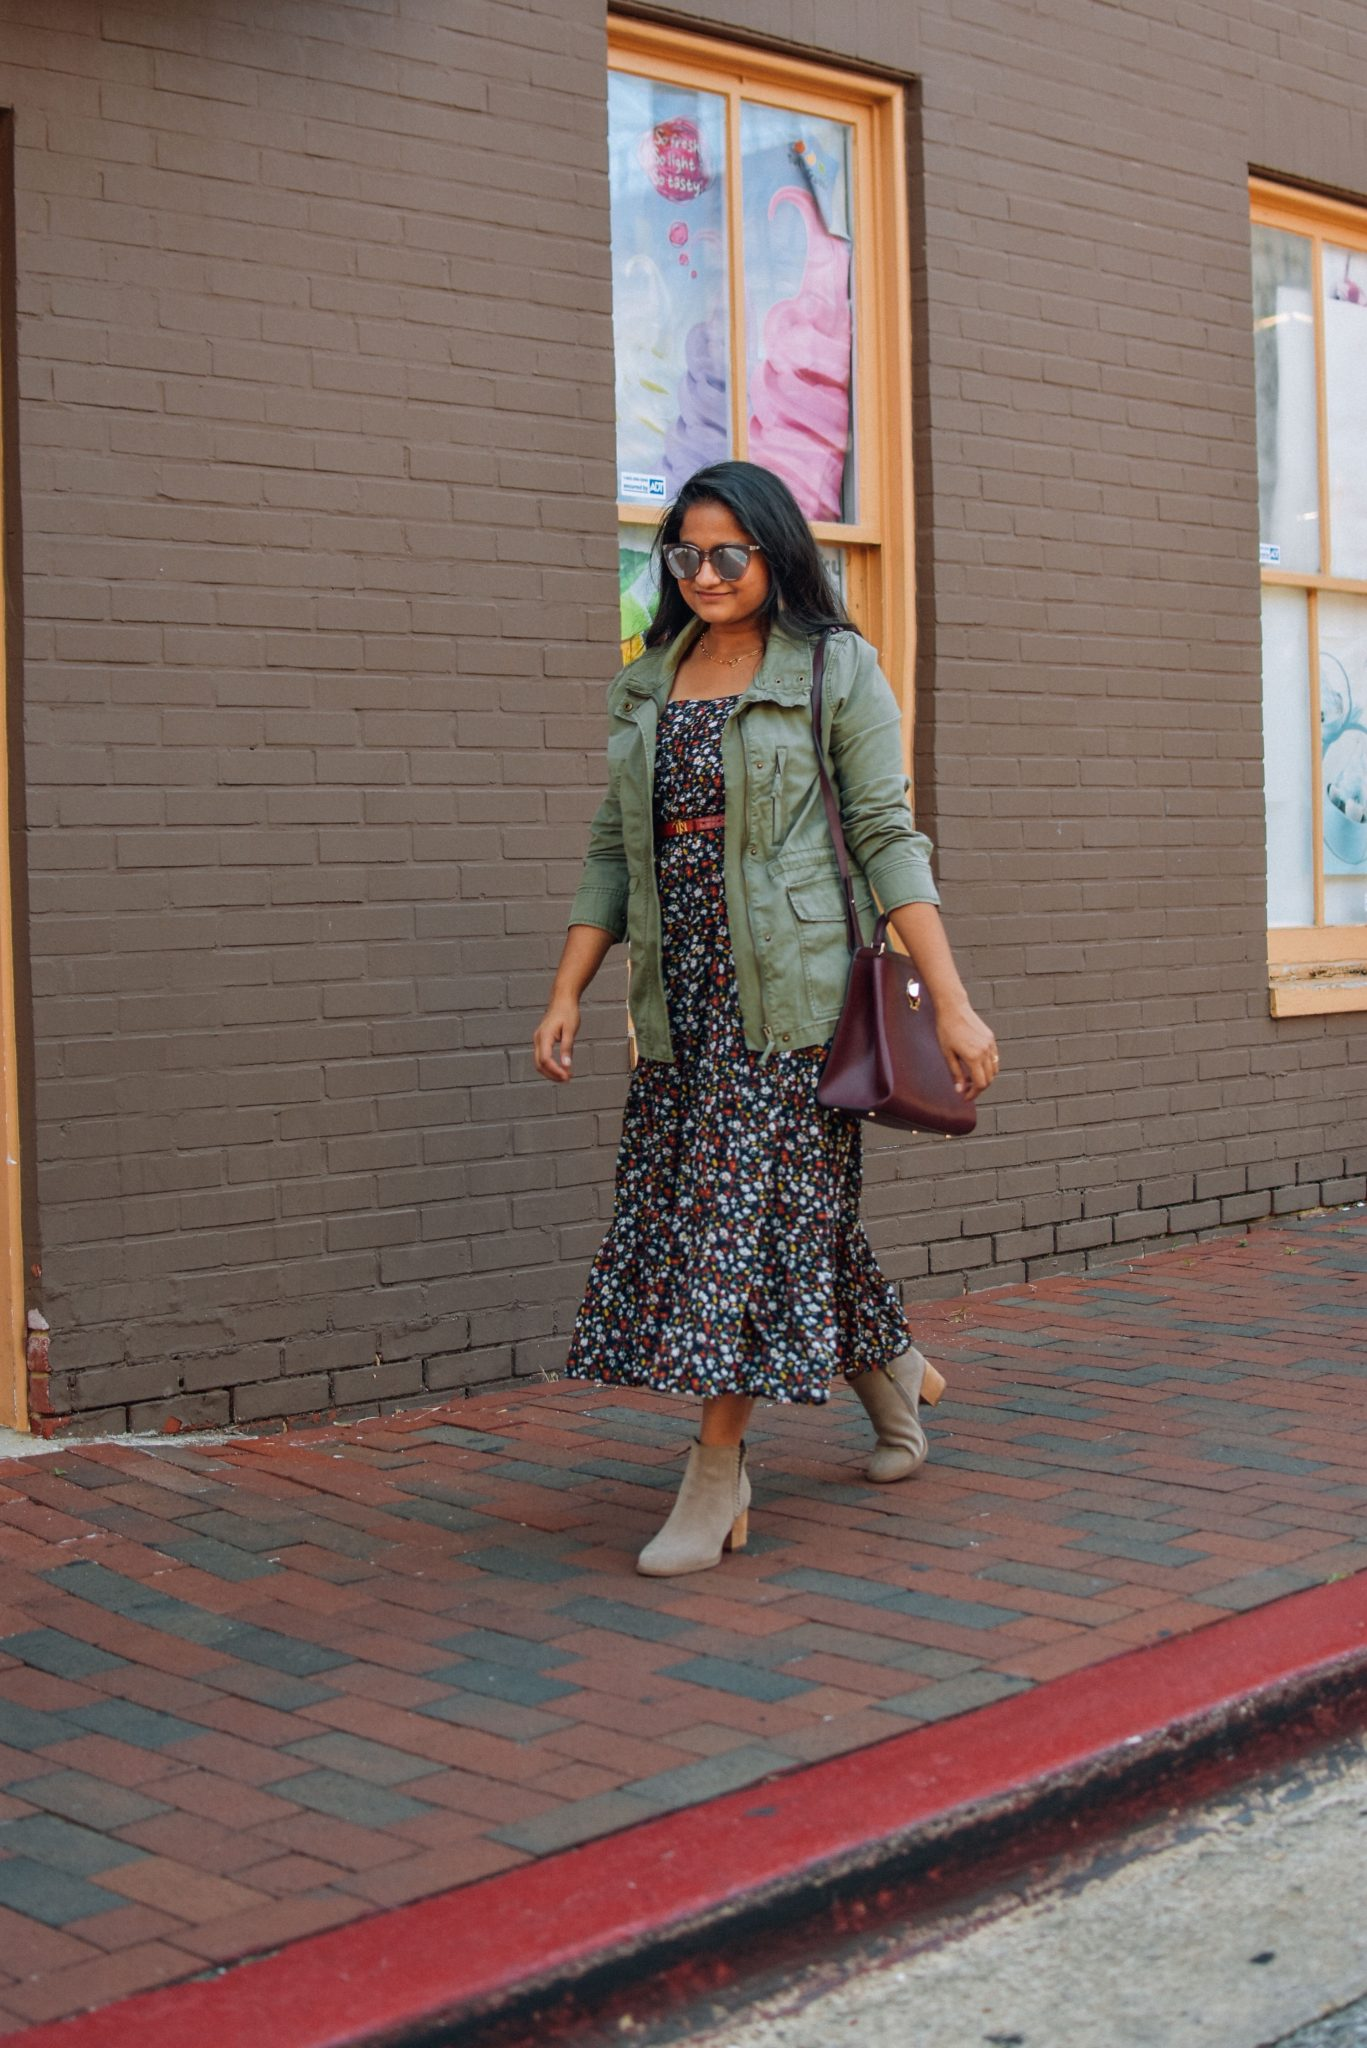 Utility Jackets by popular Maryland modest fashion blog, Dreaming Loud: image of a woman wearing a Madewell Utility jacket with a floral print dress, brown leather belt, and brown suede ankle boots.